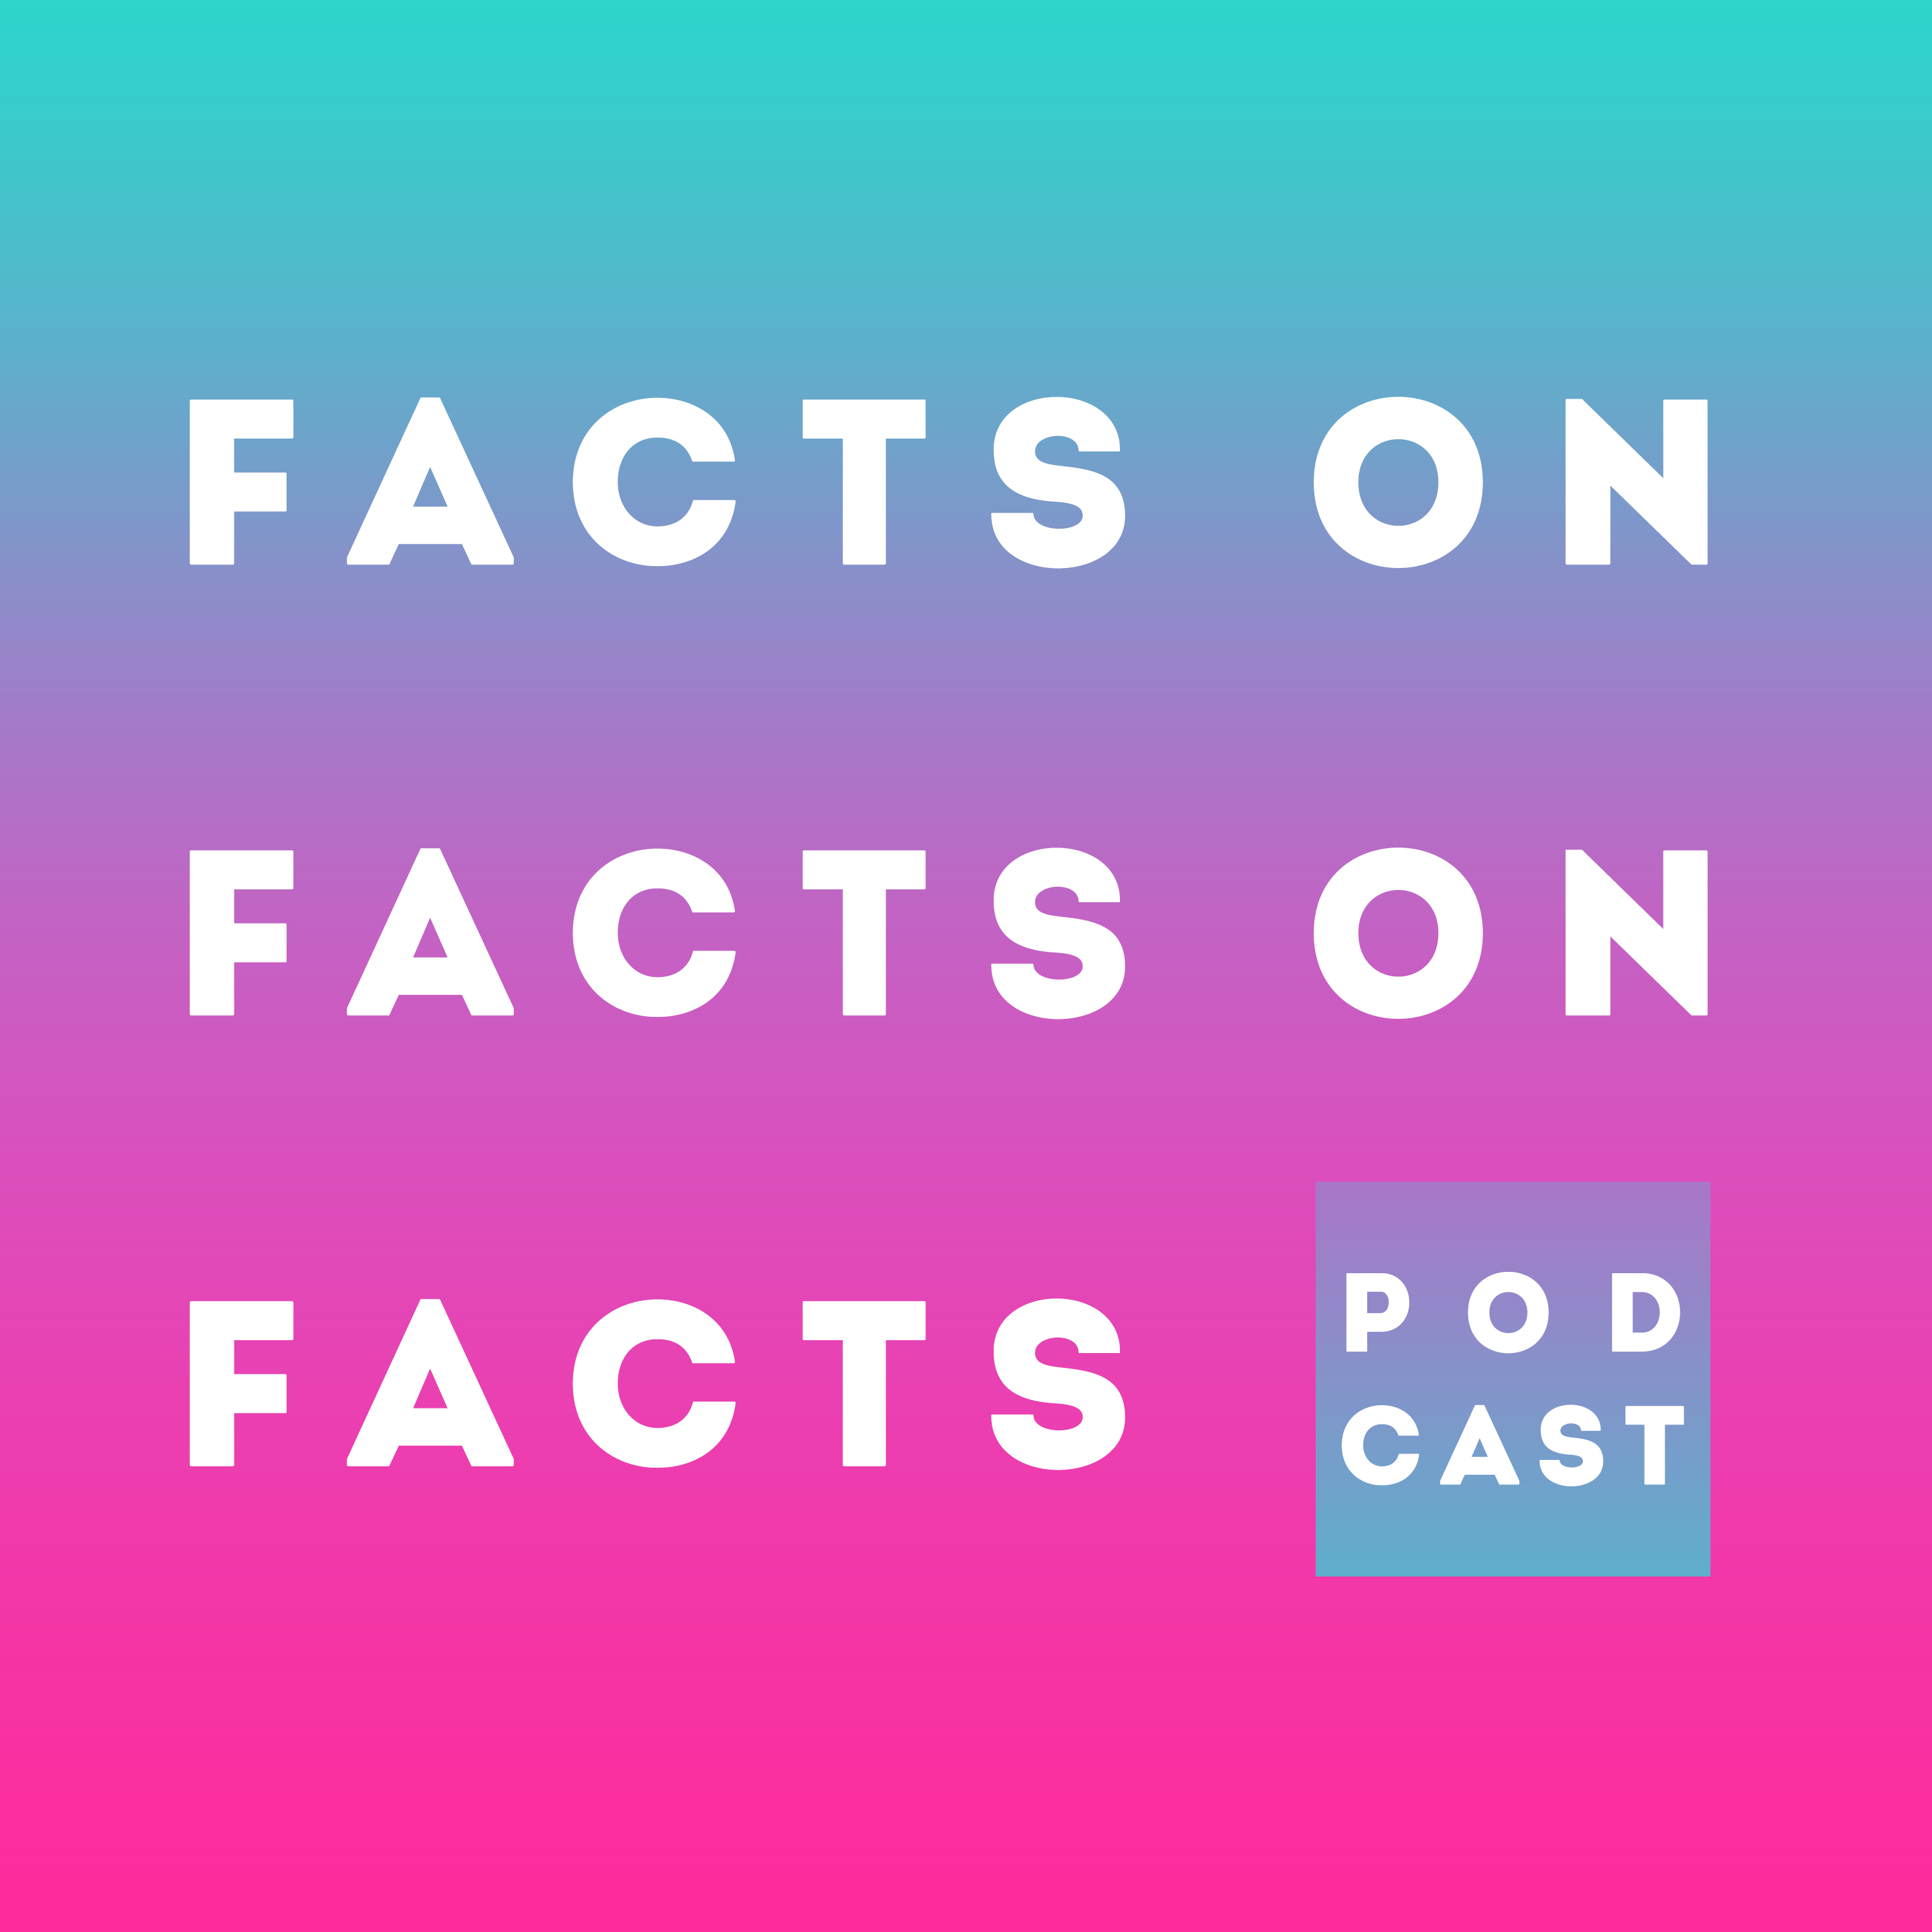 Facts on Facts on Facts